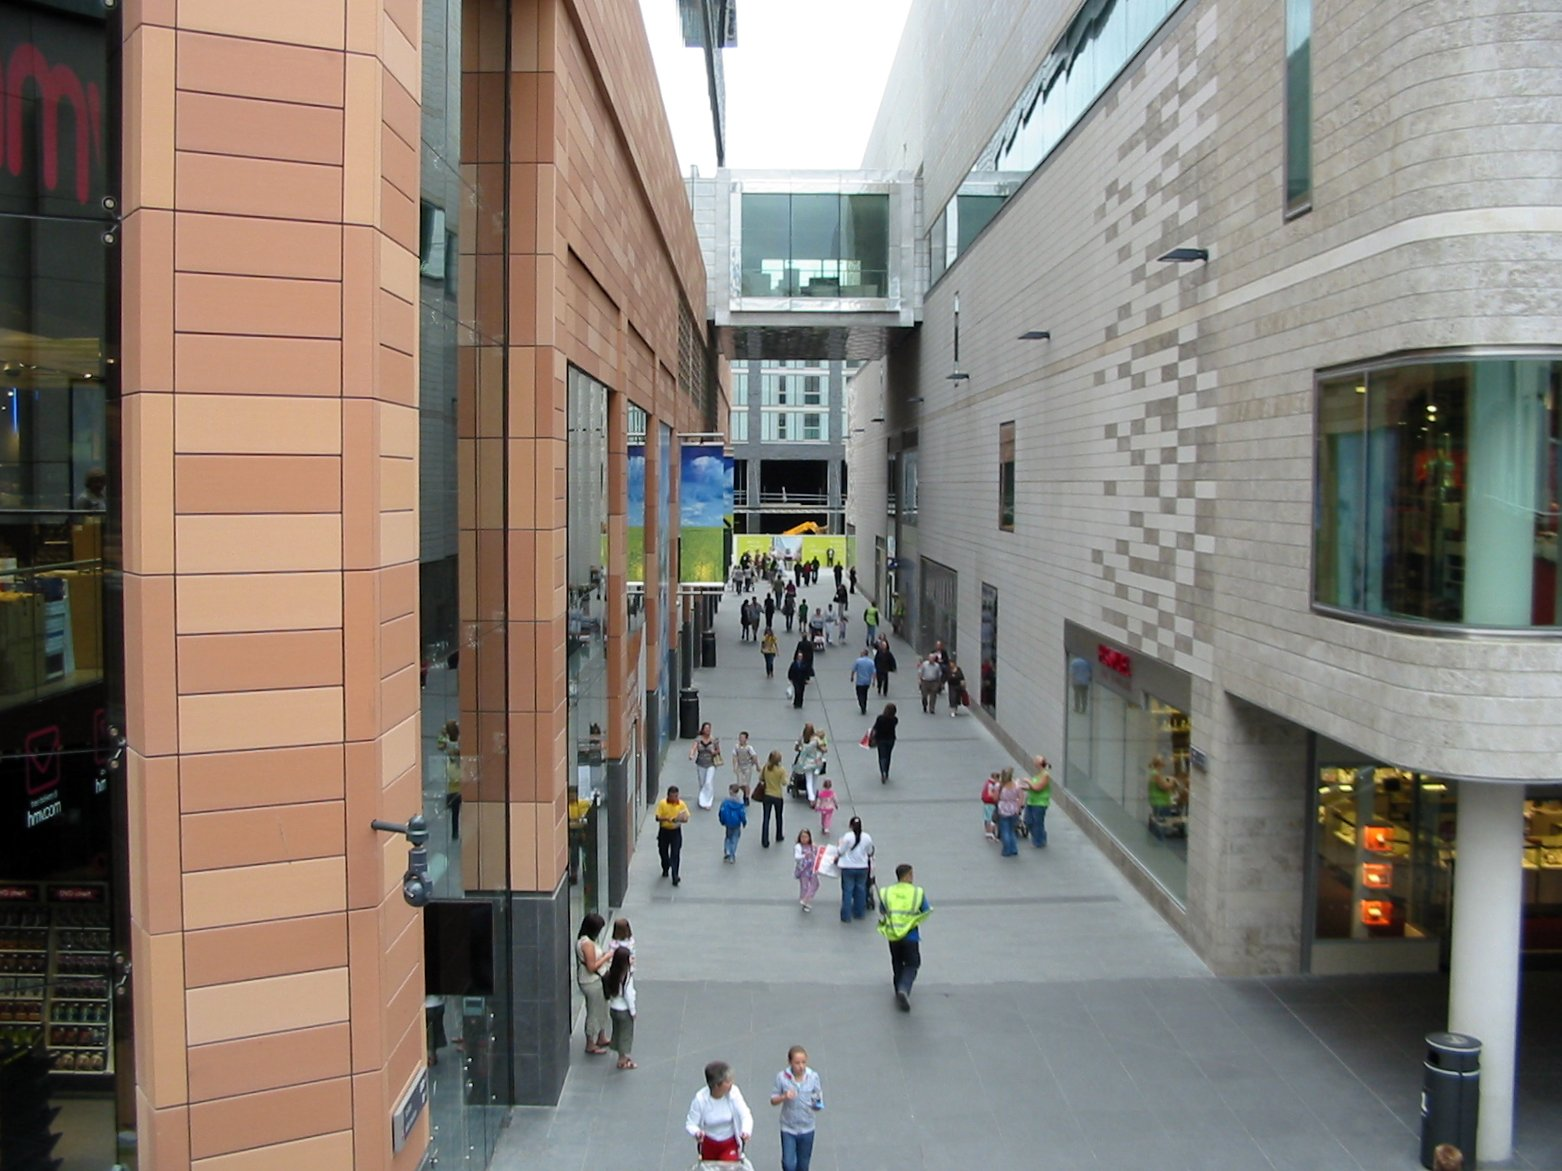 http://upload.wikimedia.org/wikipedia/commons/c/c2/Wall_Street%2C_Liverpool_ONE.jpg